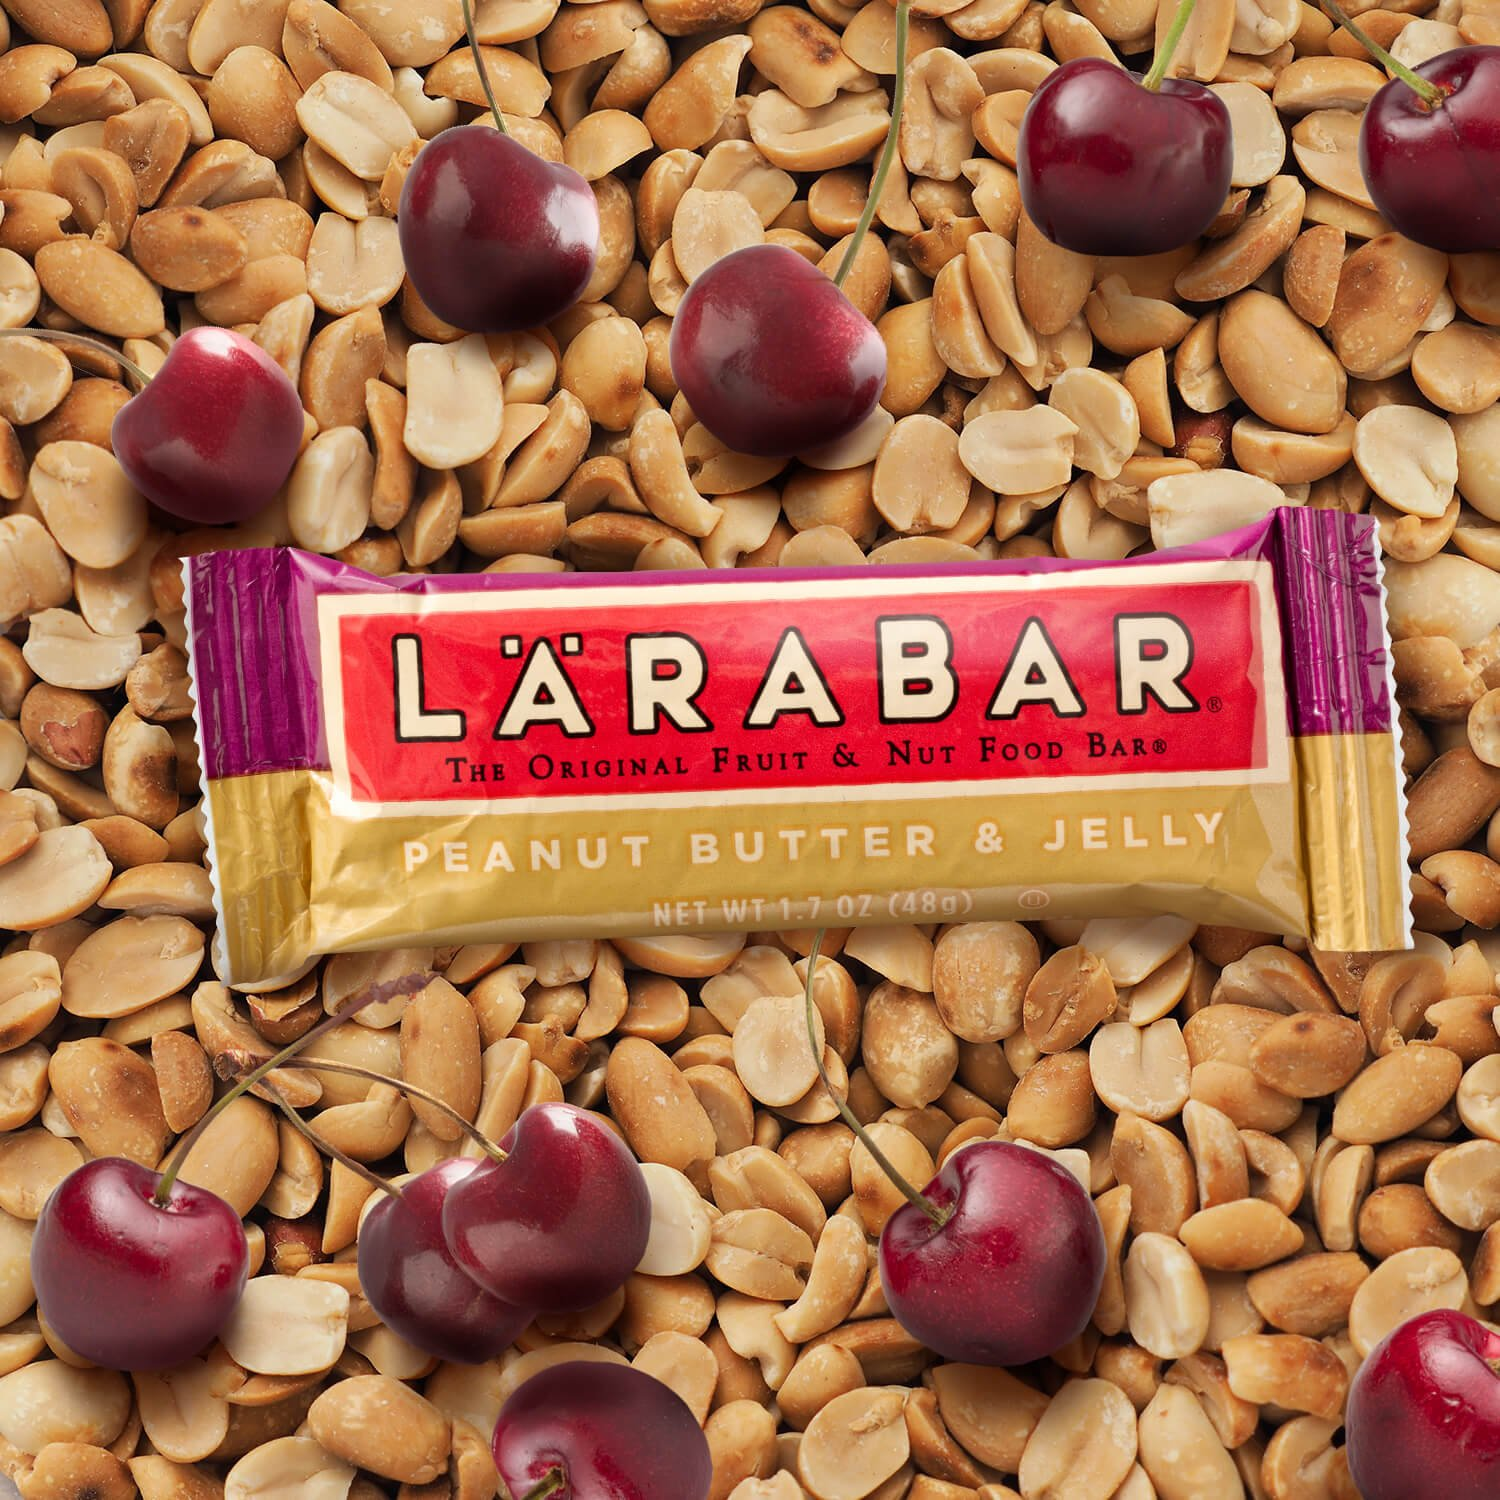 Larabar Gluten Free Bar, Peanut Butter & Jelly, 1.7 oz Bars (16 Count), Whole Food Gluten Free Bars, Dairy Free Snacks by LÄRABAR (Image #6)